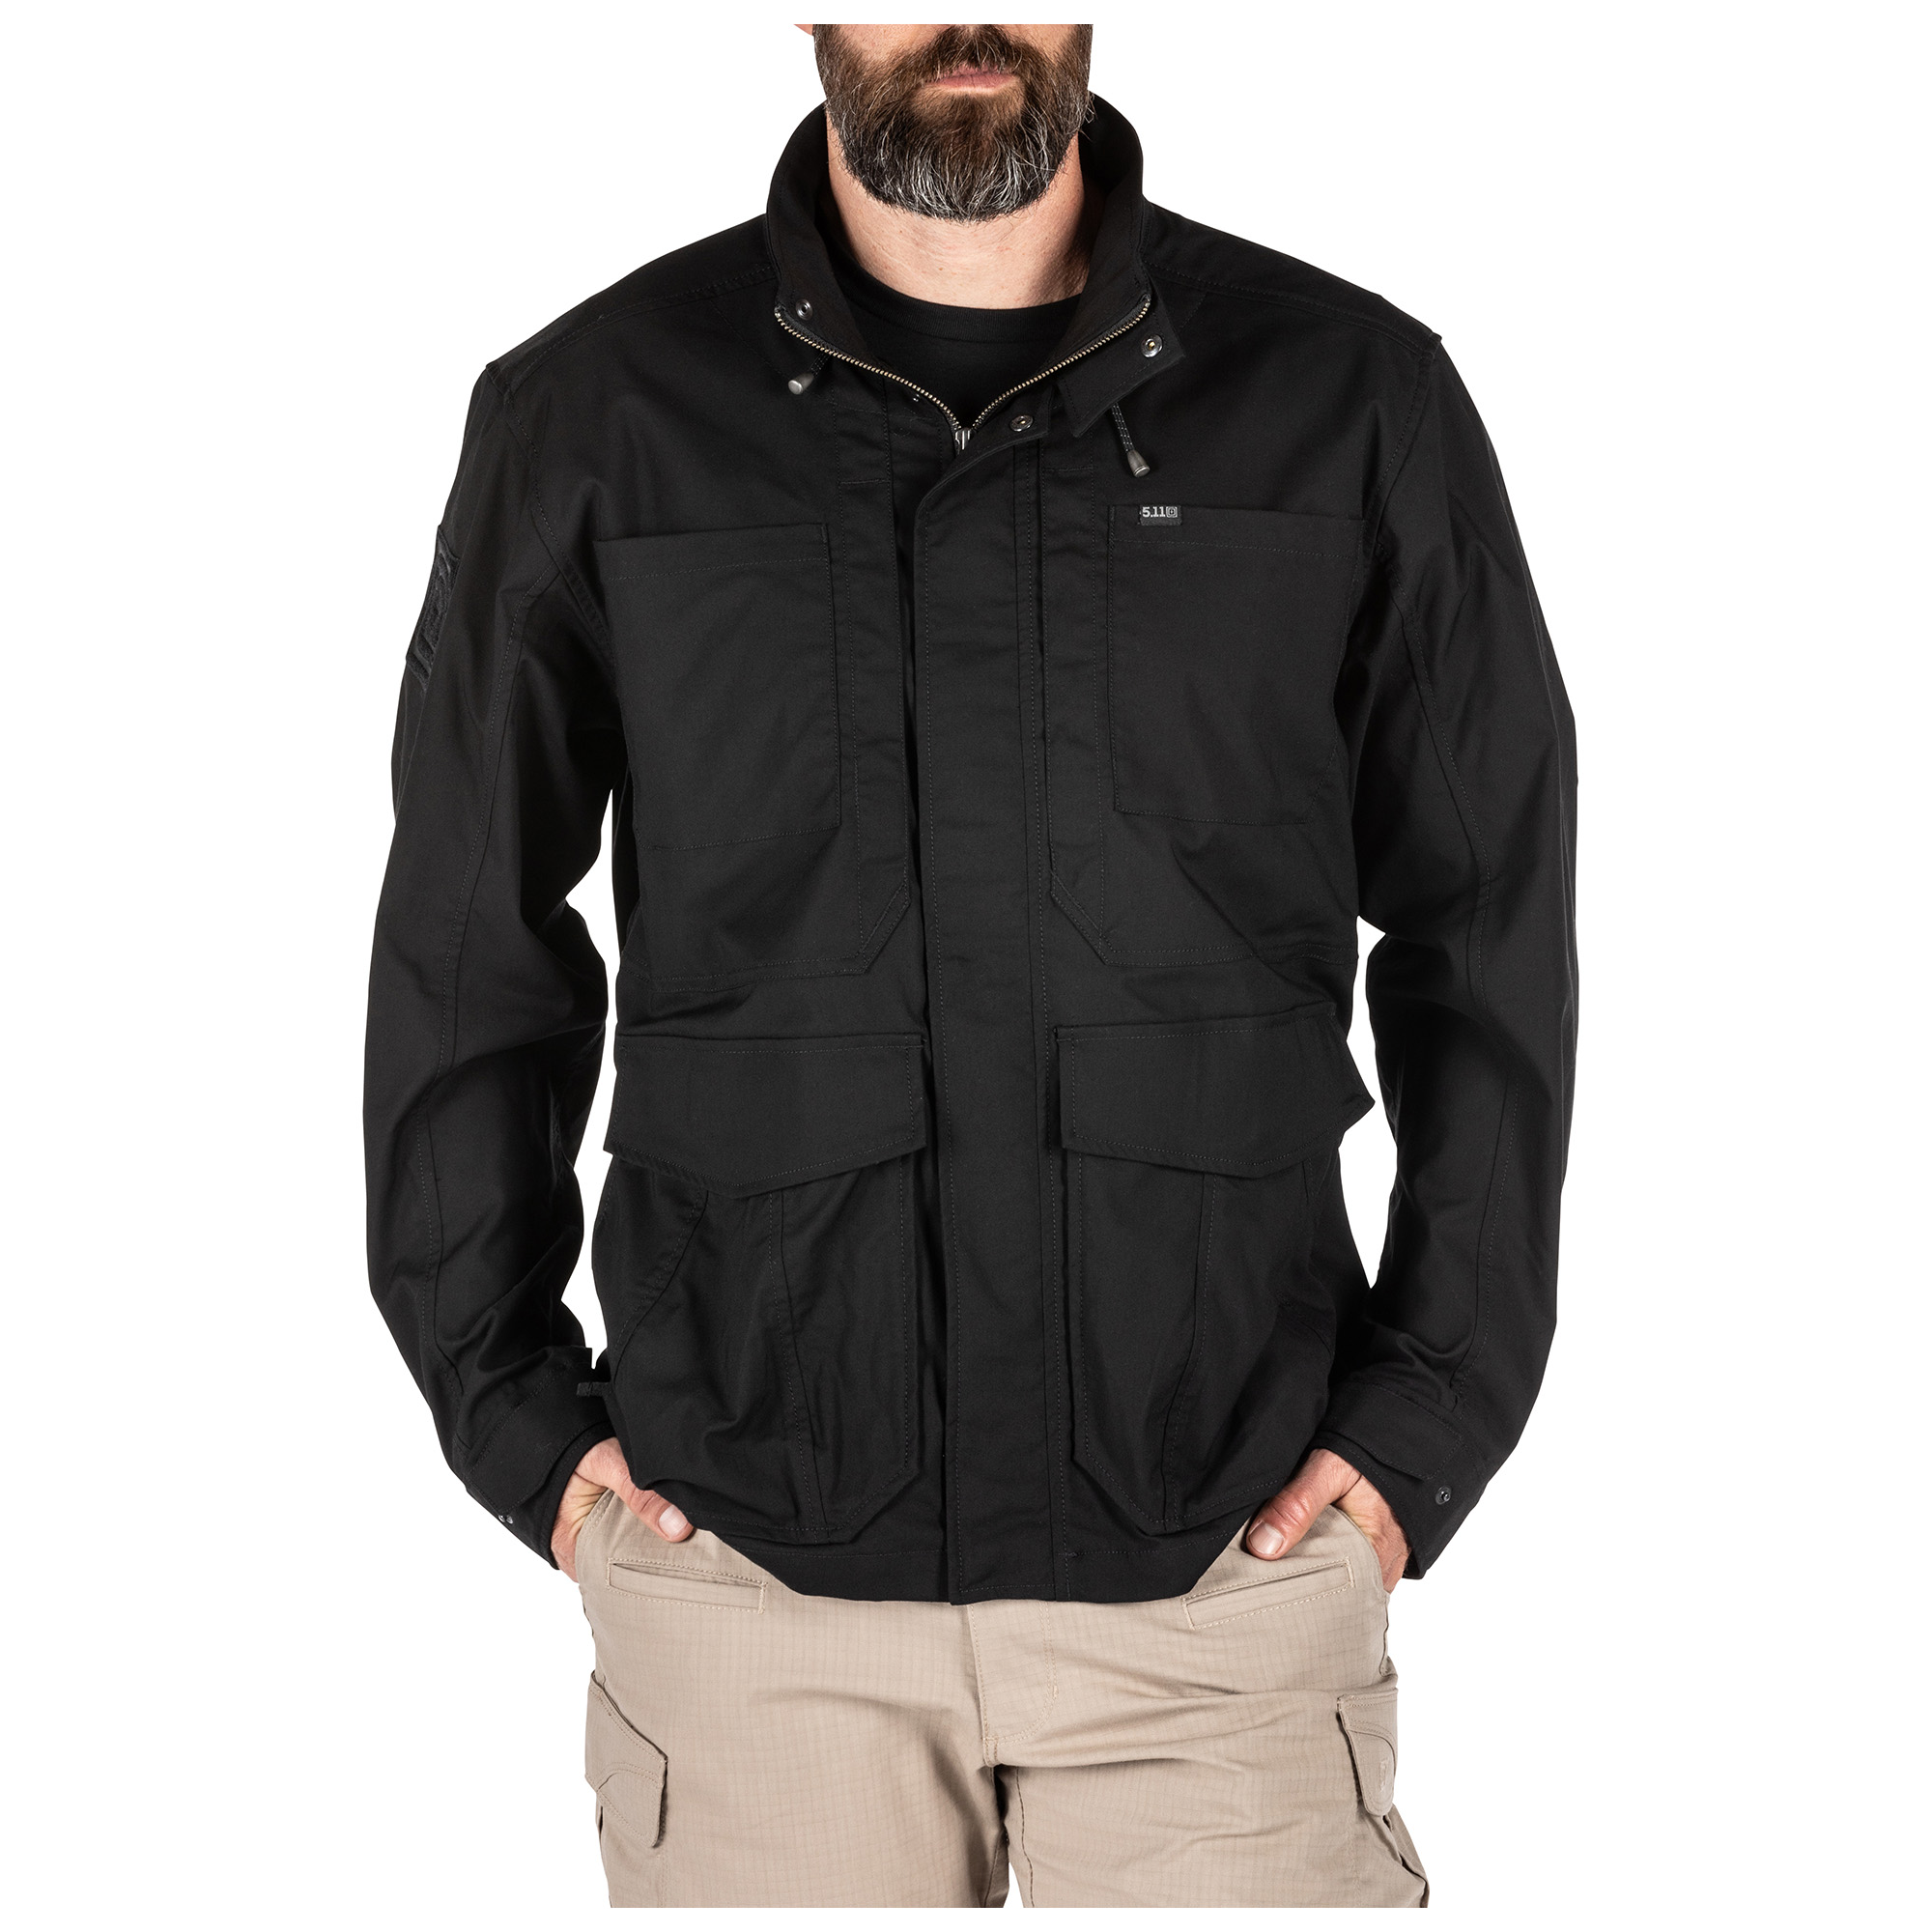 5.11 Tactical Men's Surplus Jacket (Black) thumbnail